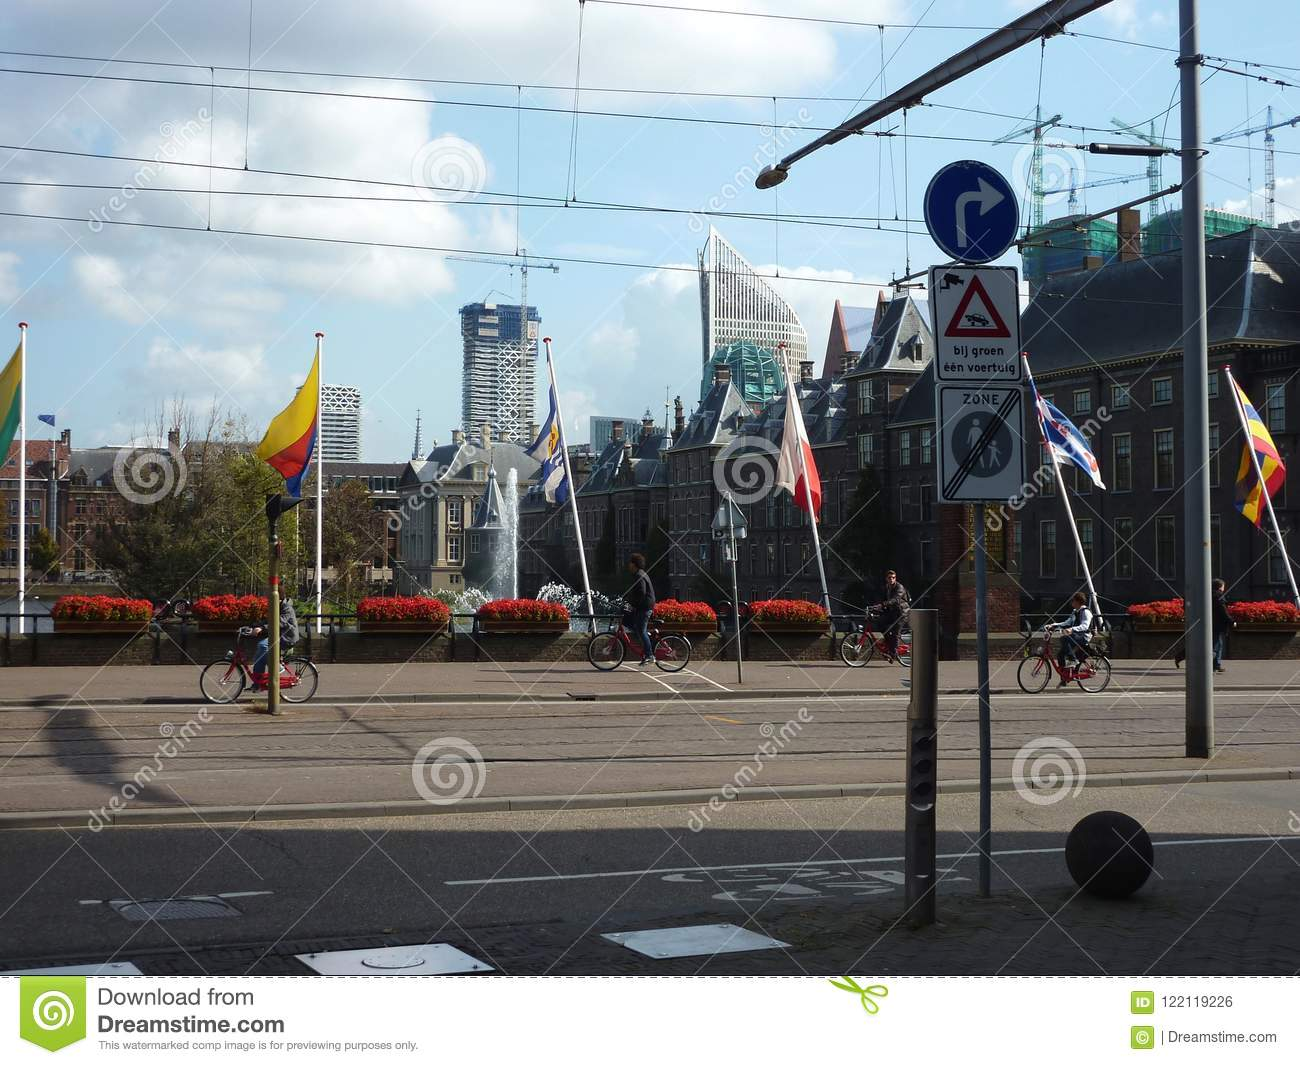 City of the Hague, busy streets and traffic signs